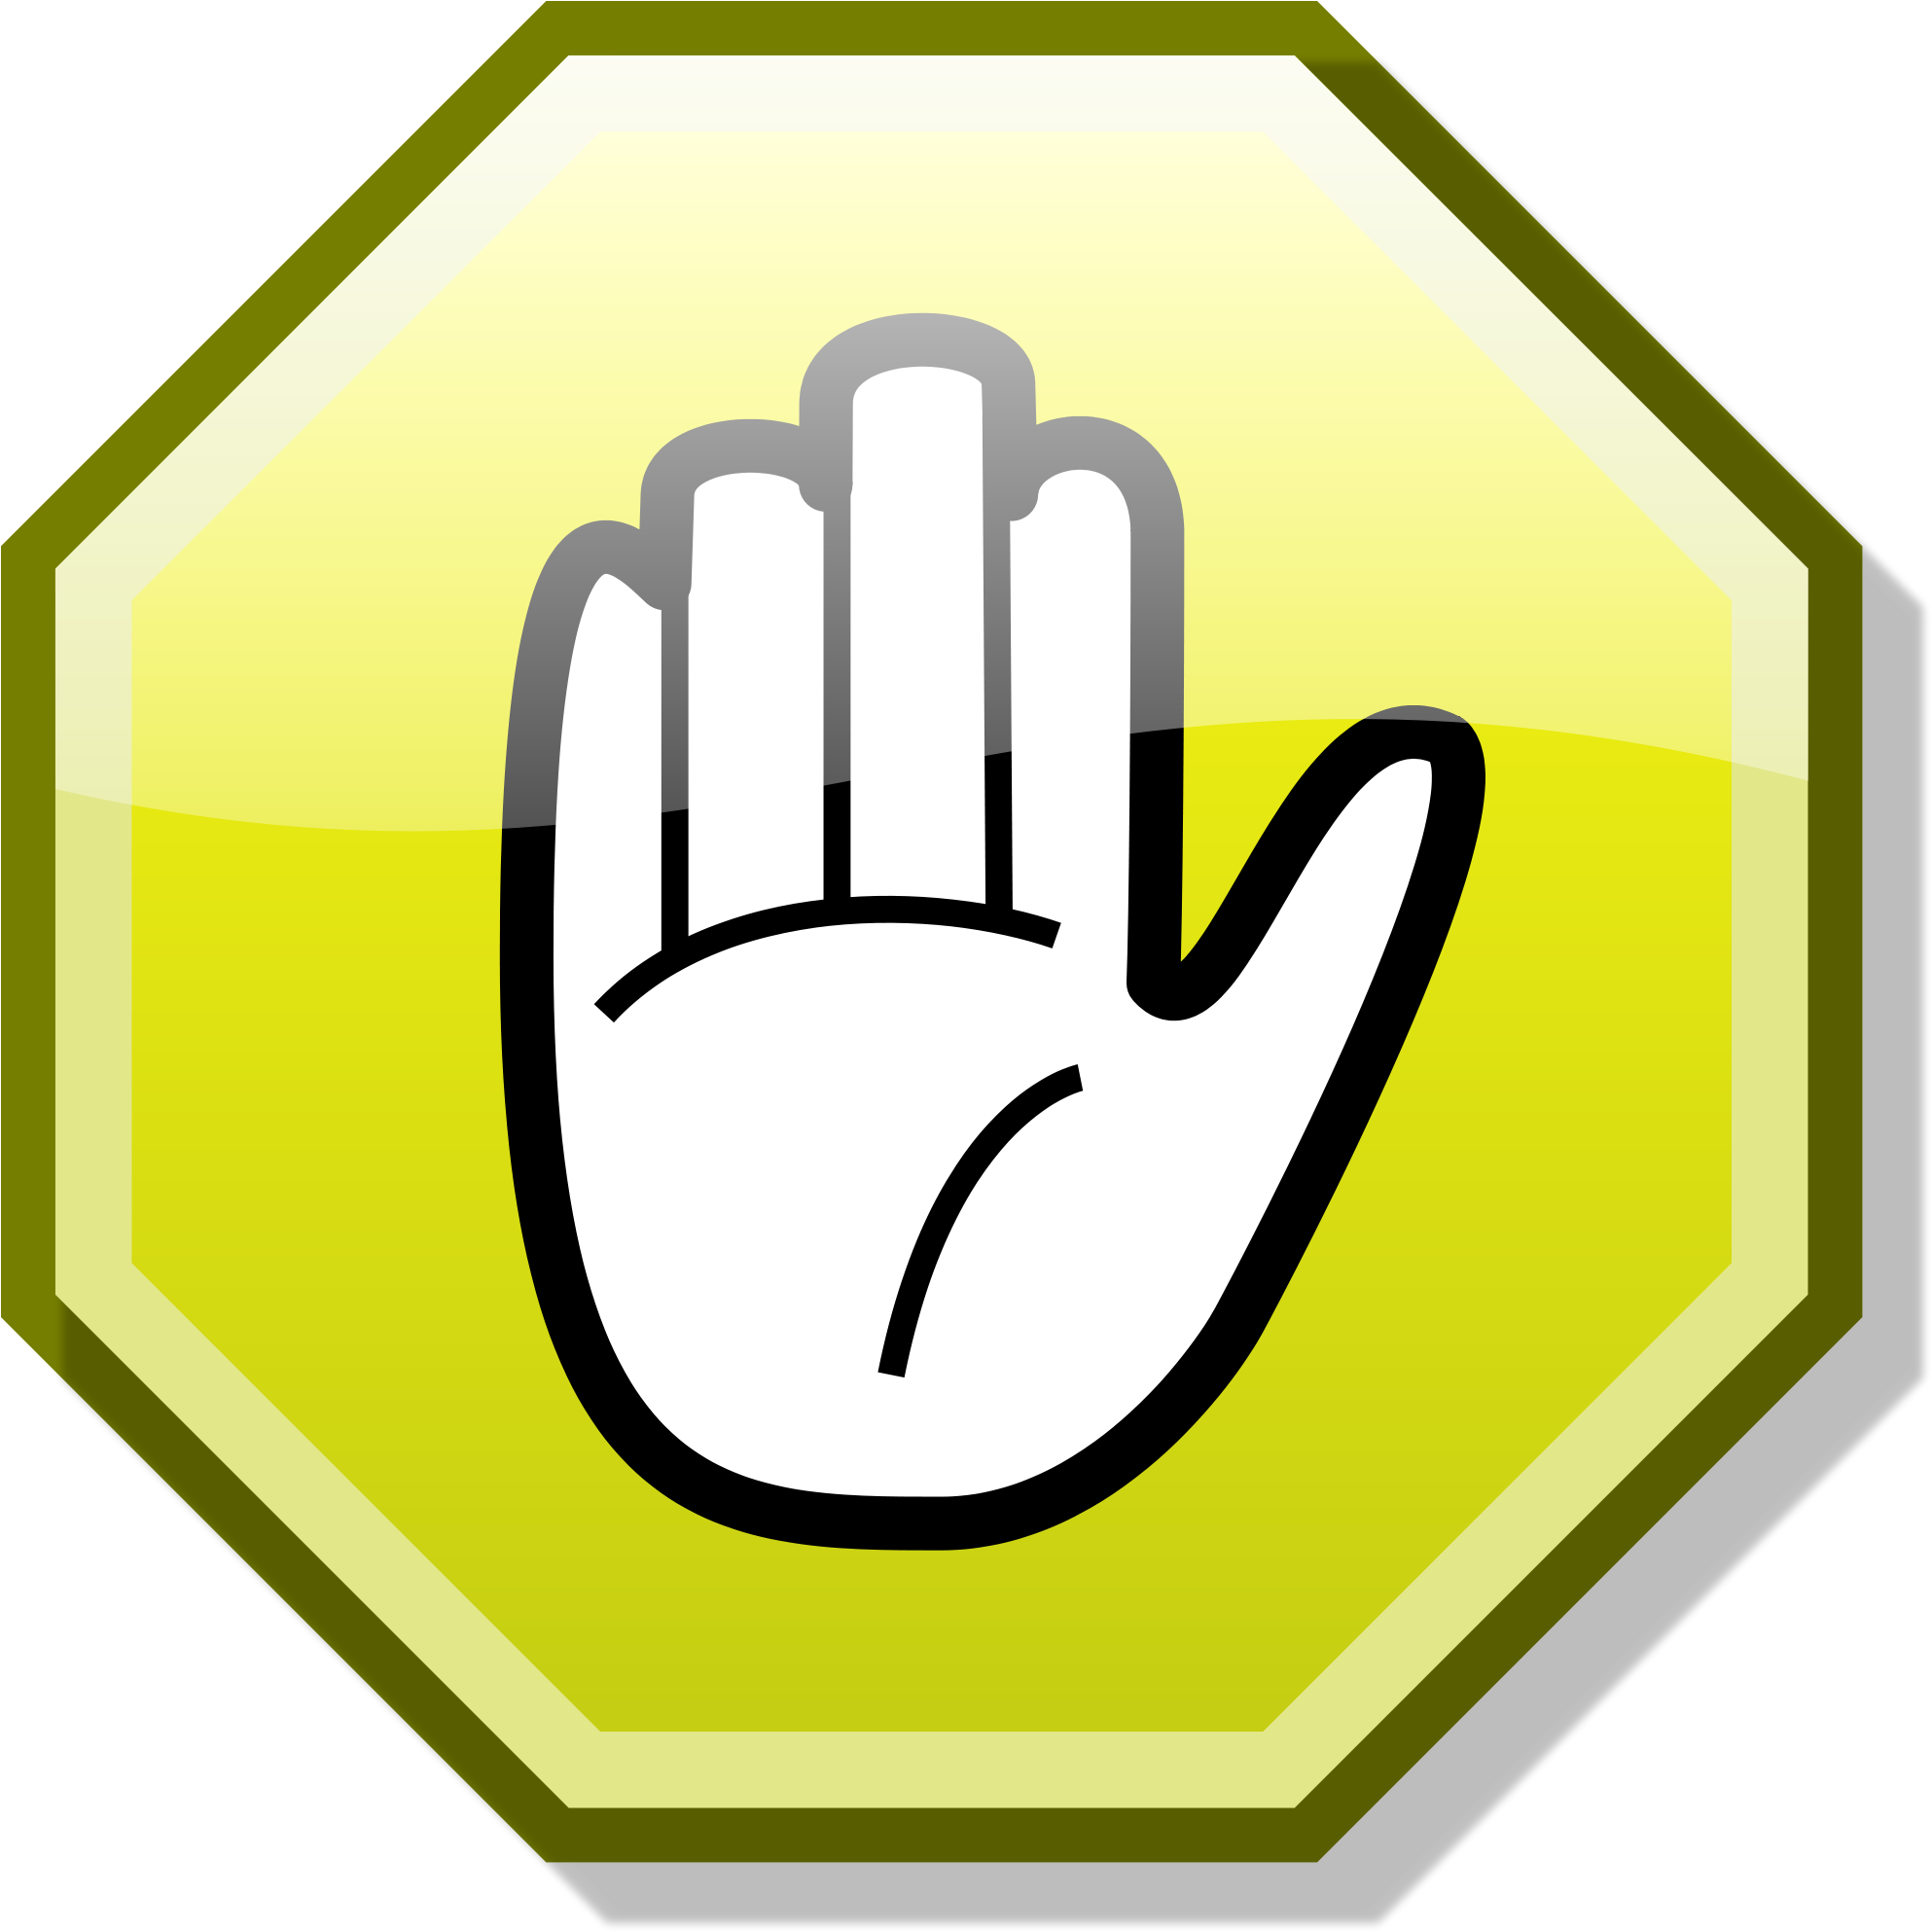 Stop hand png. Download open yellow image